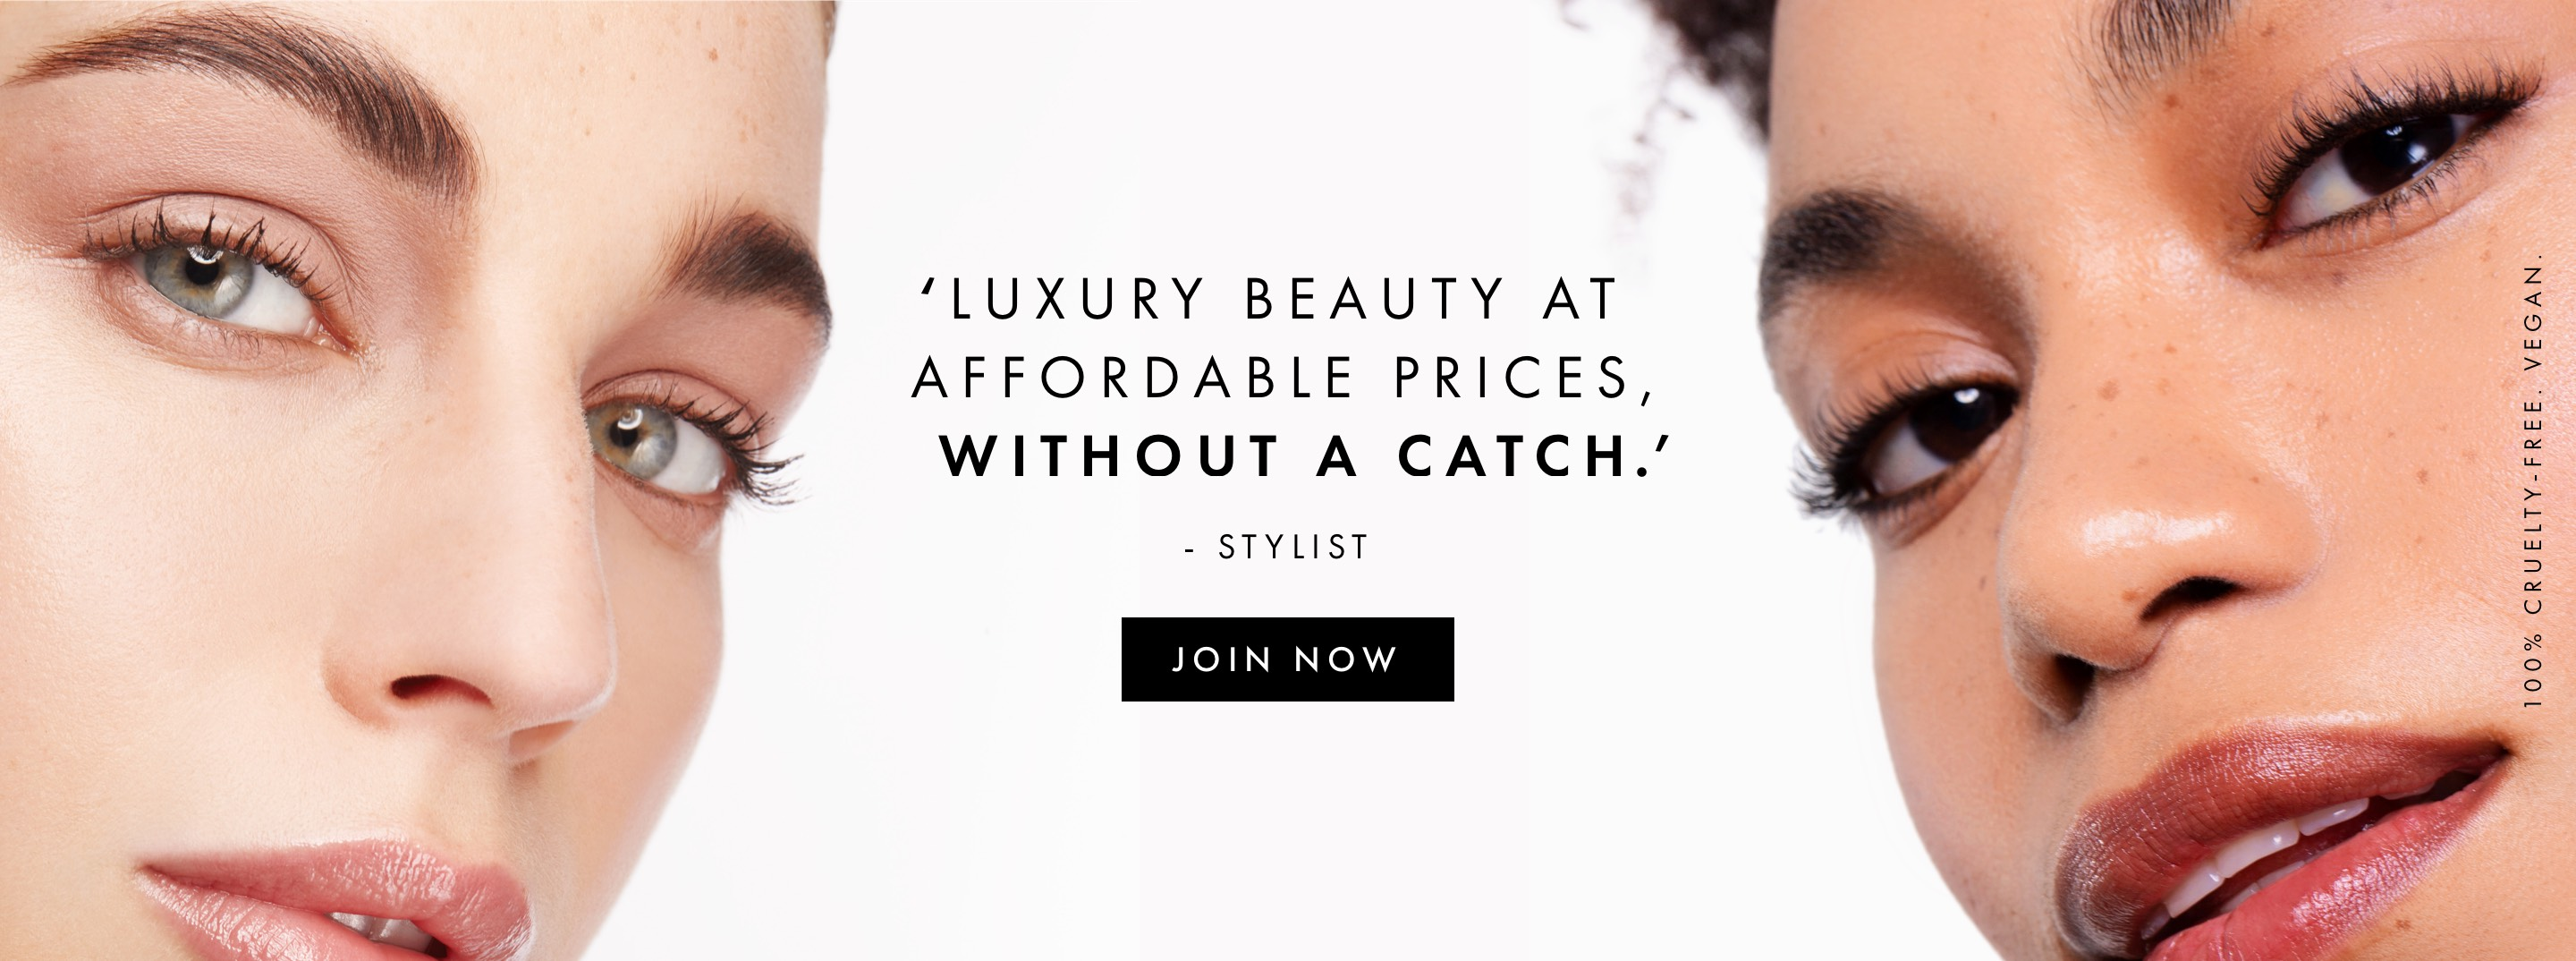 Luxury Beauty At Affordable Prices Without A Catch.